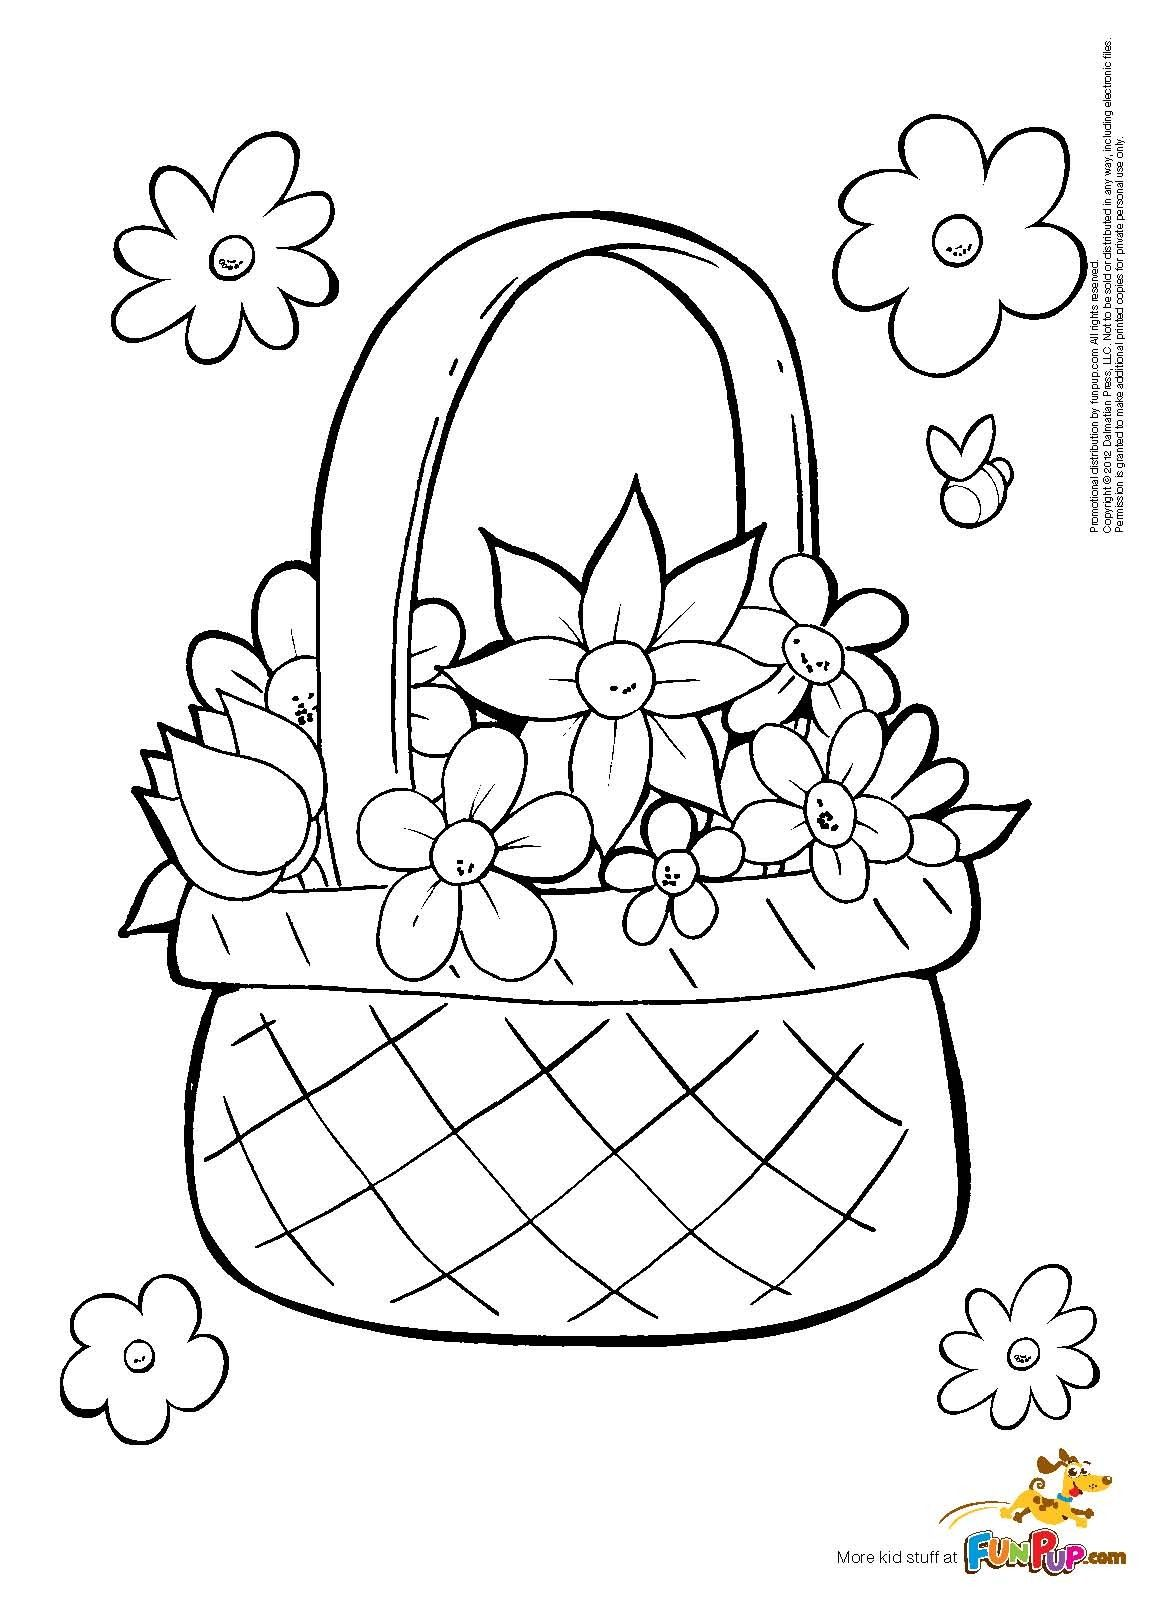 easy drawings of flowers Google Search Free printable